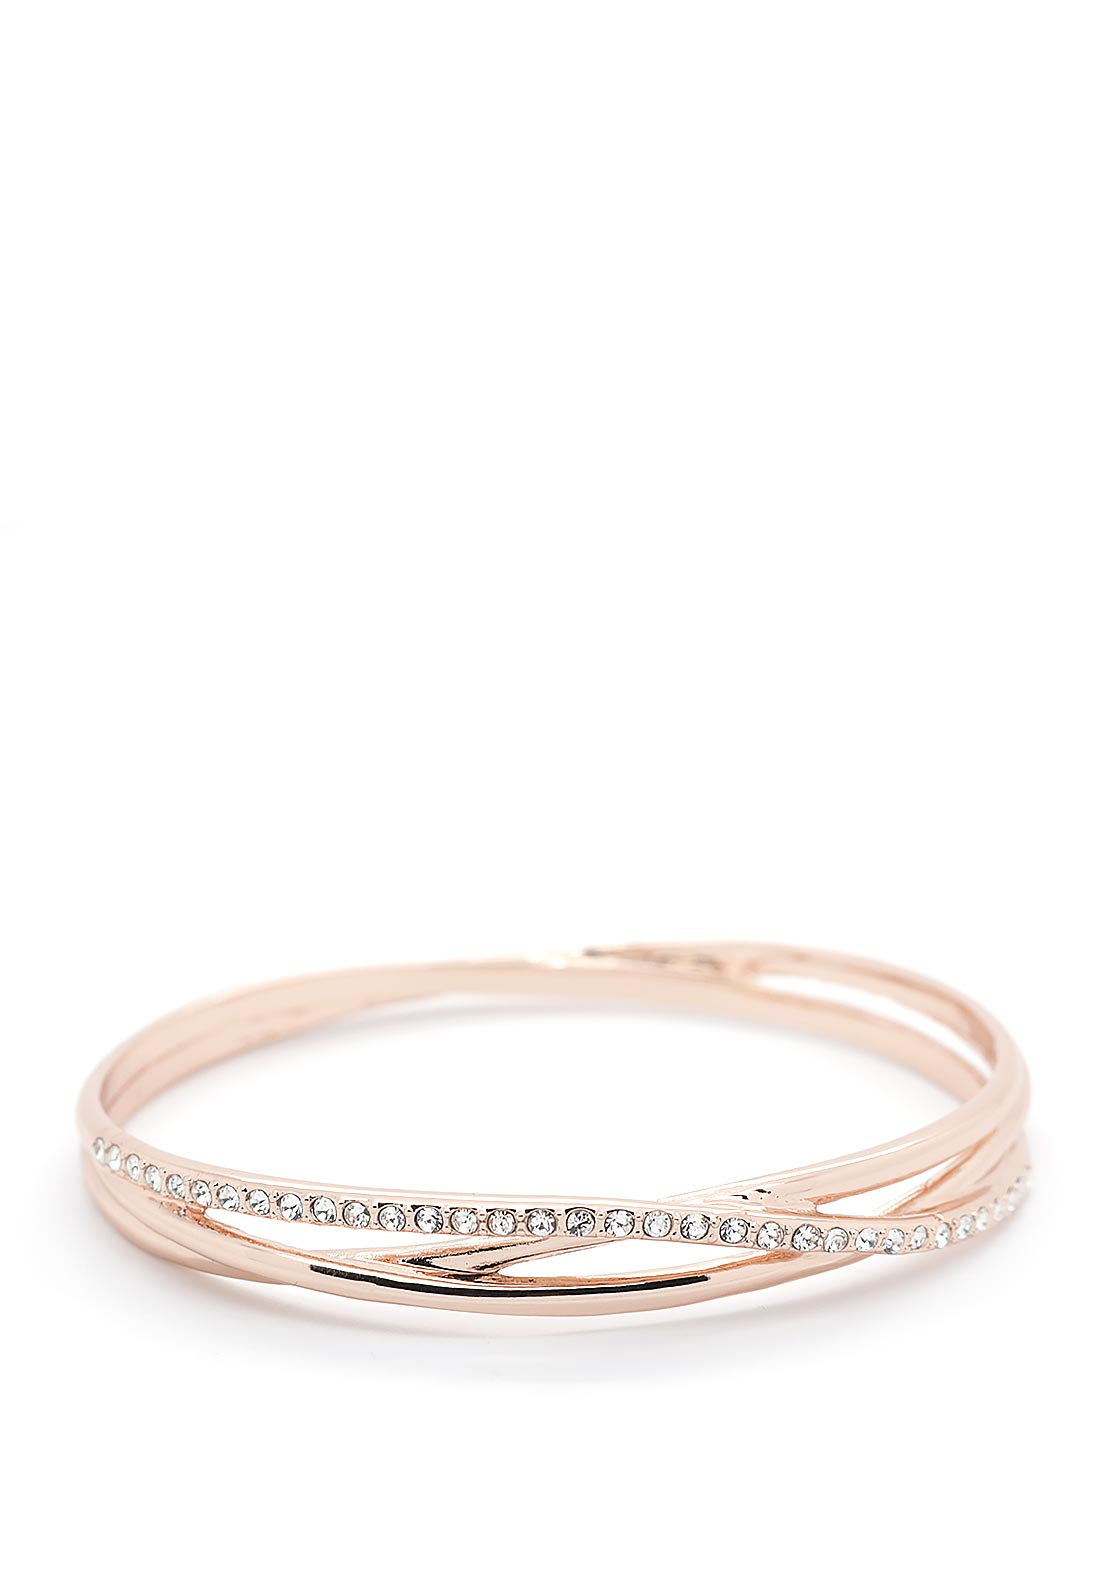 Absolute Crystal Criss-Cross Bangle, Rose Gold